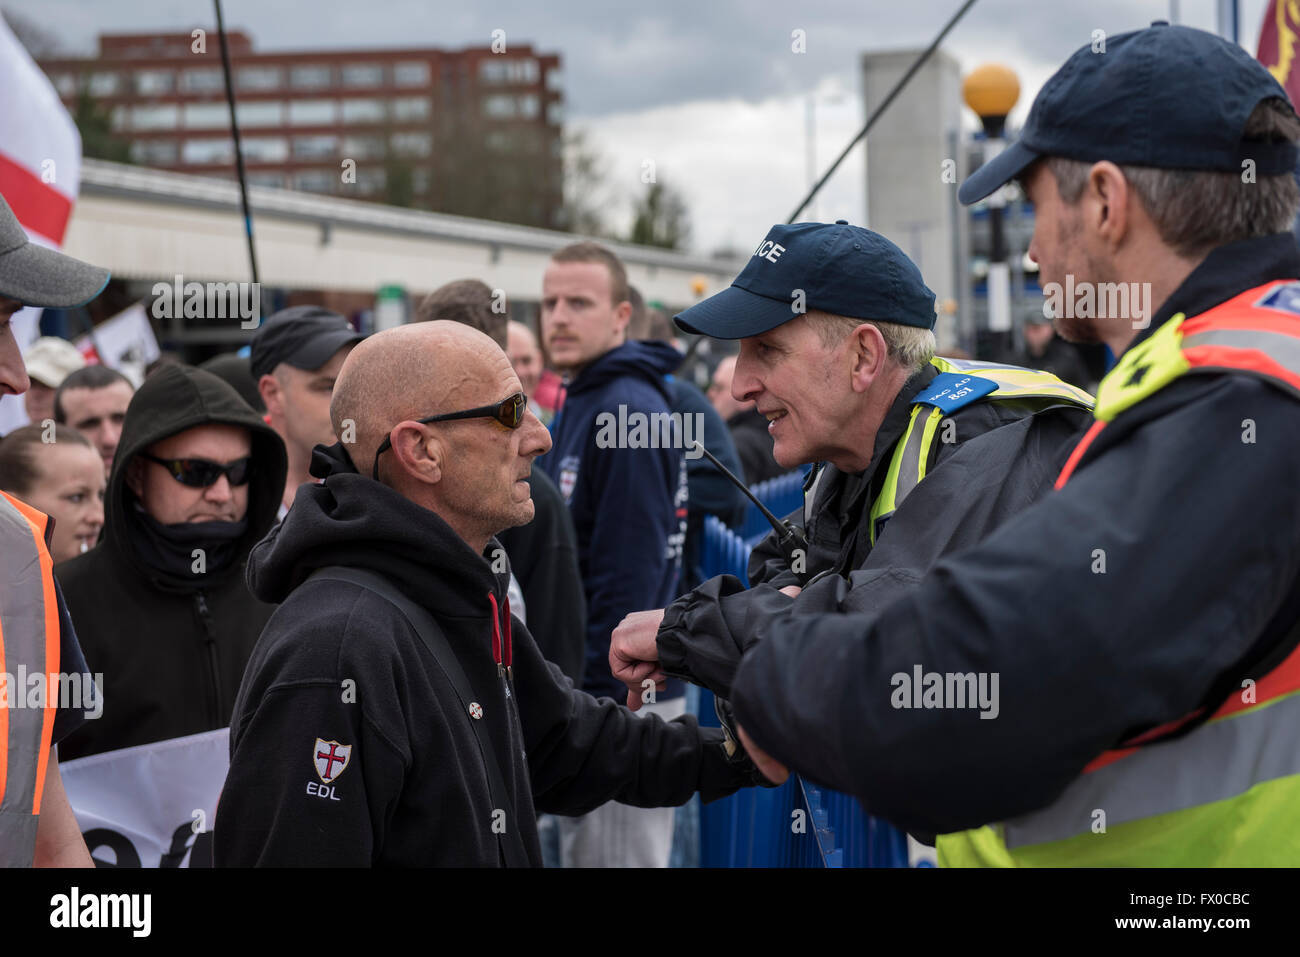 High Wycombe, Buckinghamshire, UK. 9th April 2016. An EDL supporter is warned by Police for wearing a face mask. - Stock Image